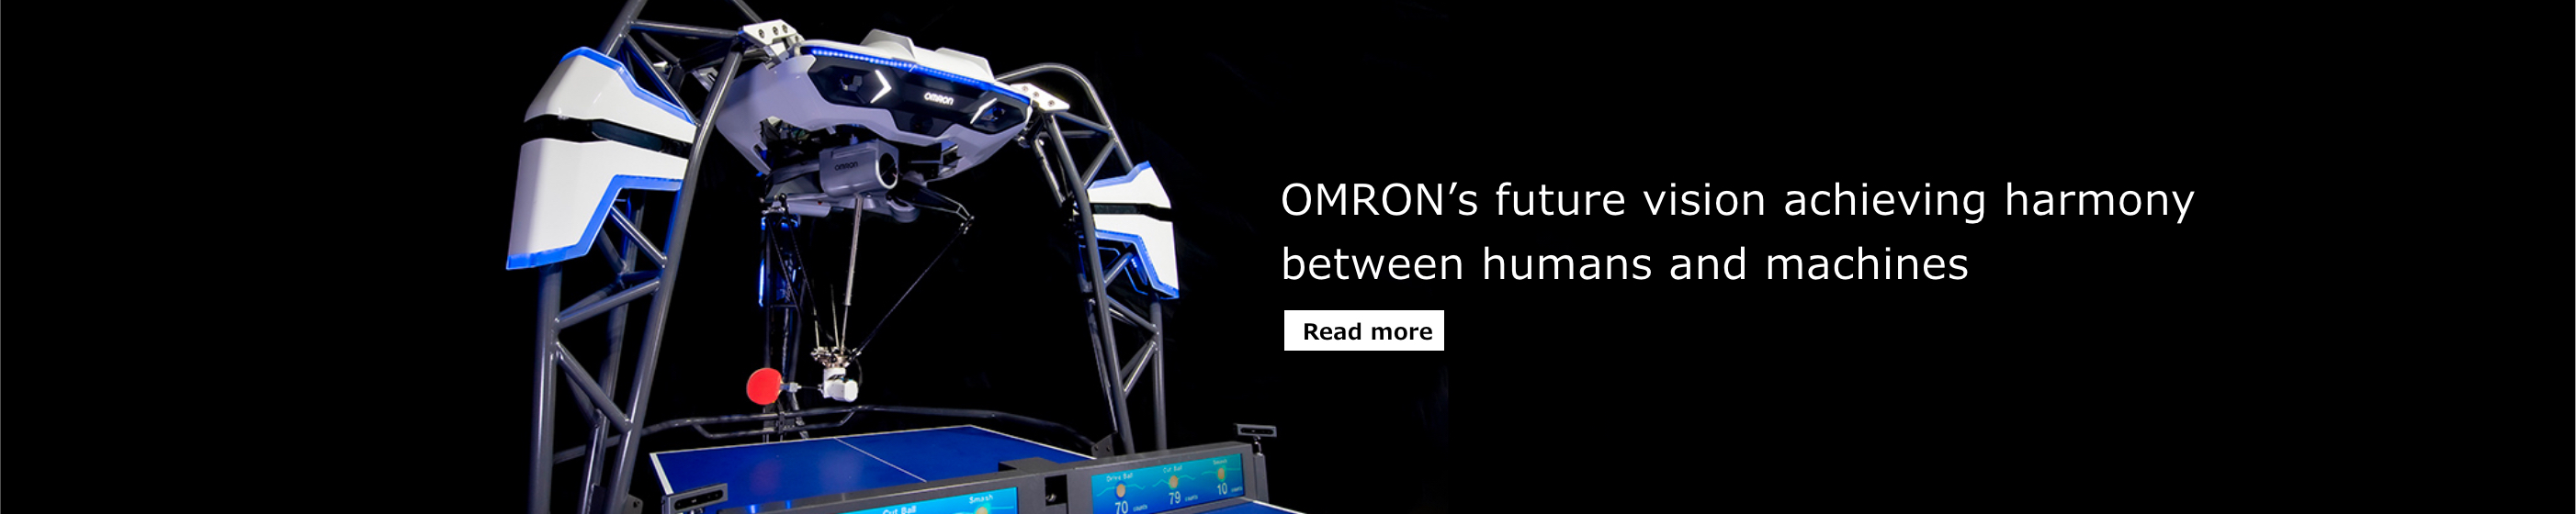 OMRON's future vision achieving harmony between humans and machines ~ Read more